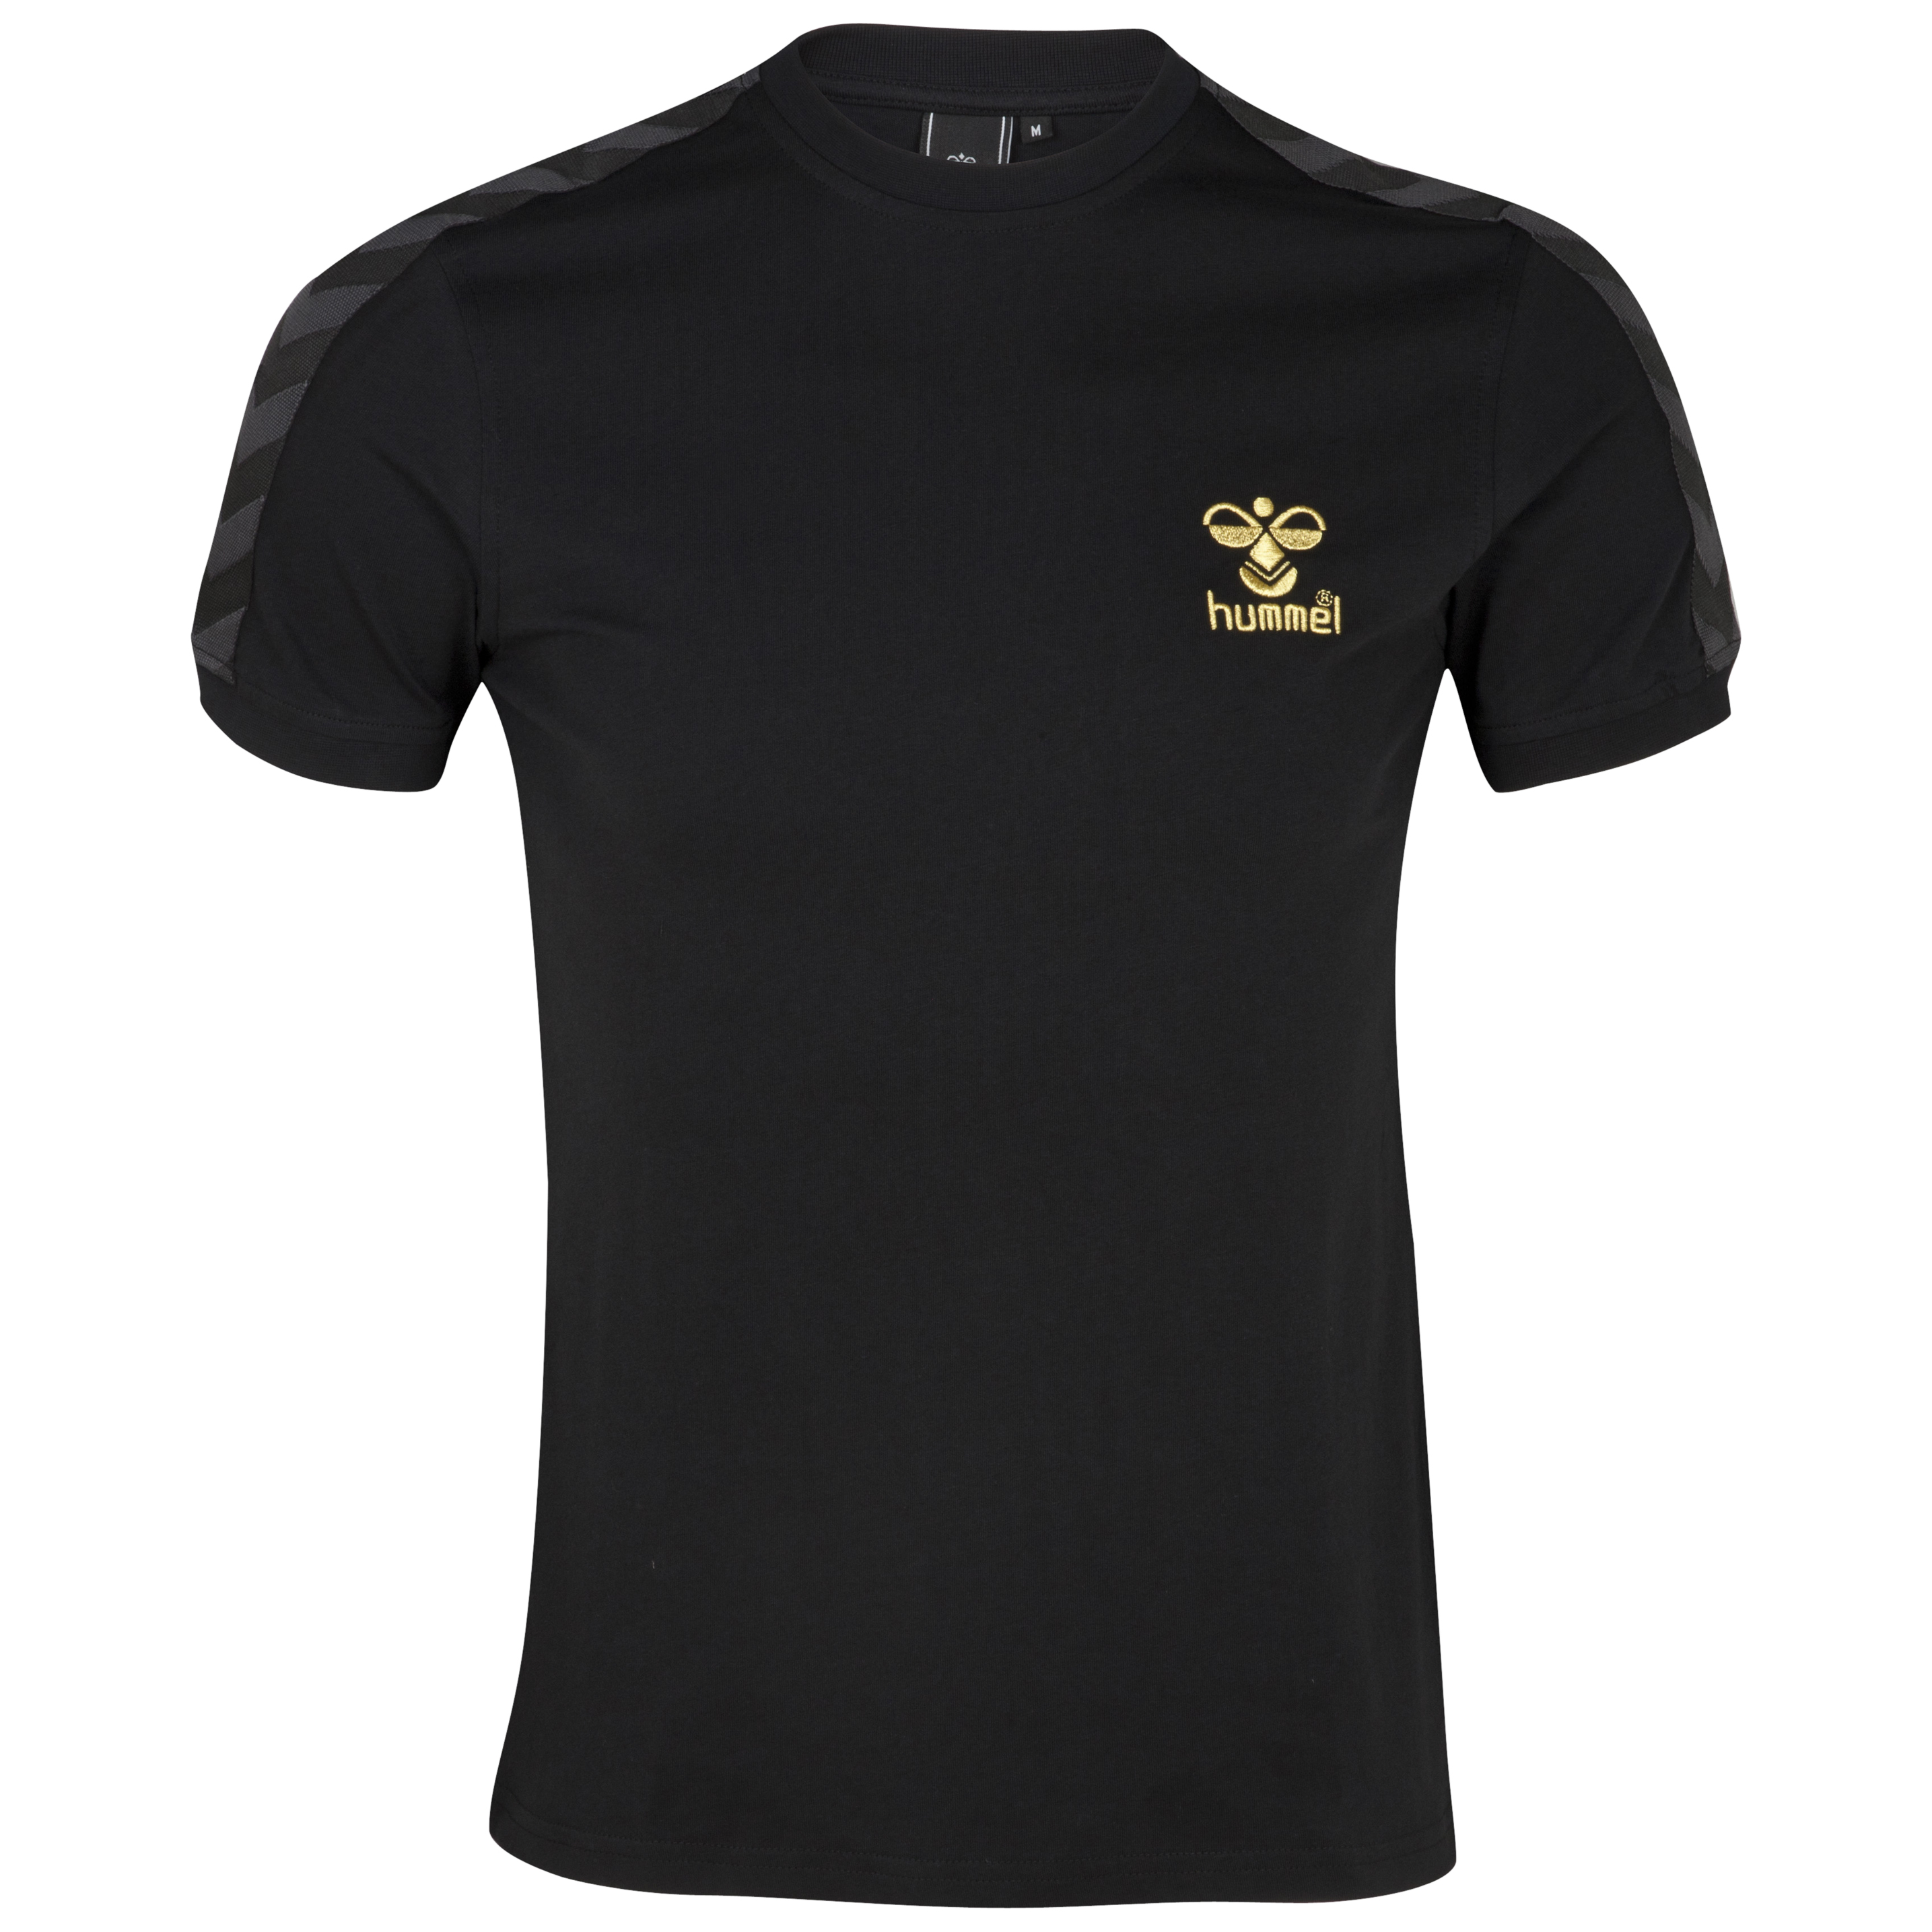 Hummel Davenport T-Shirt - Black/Gold